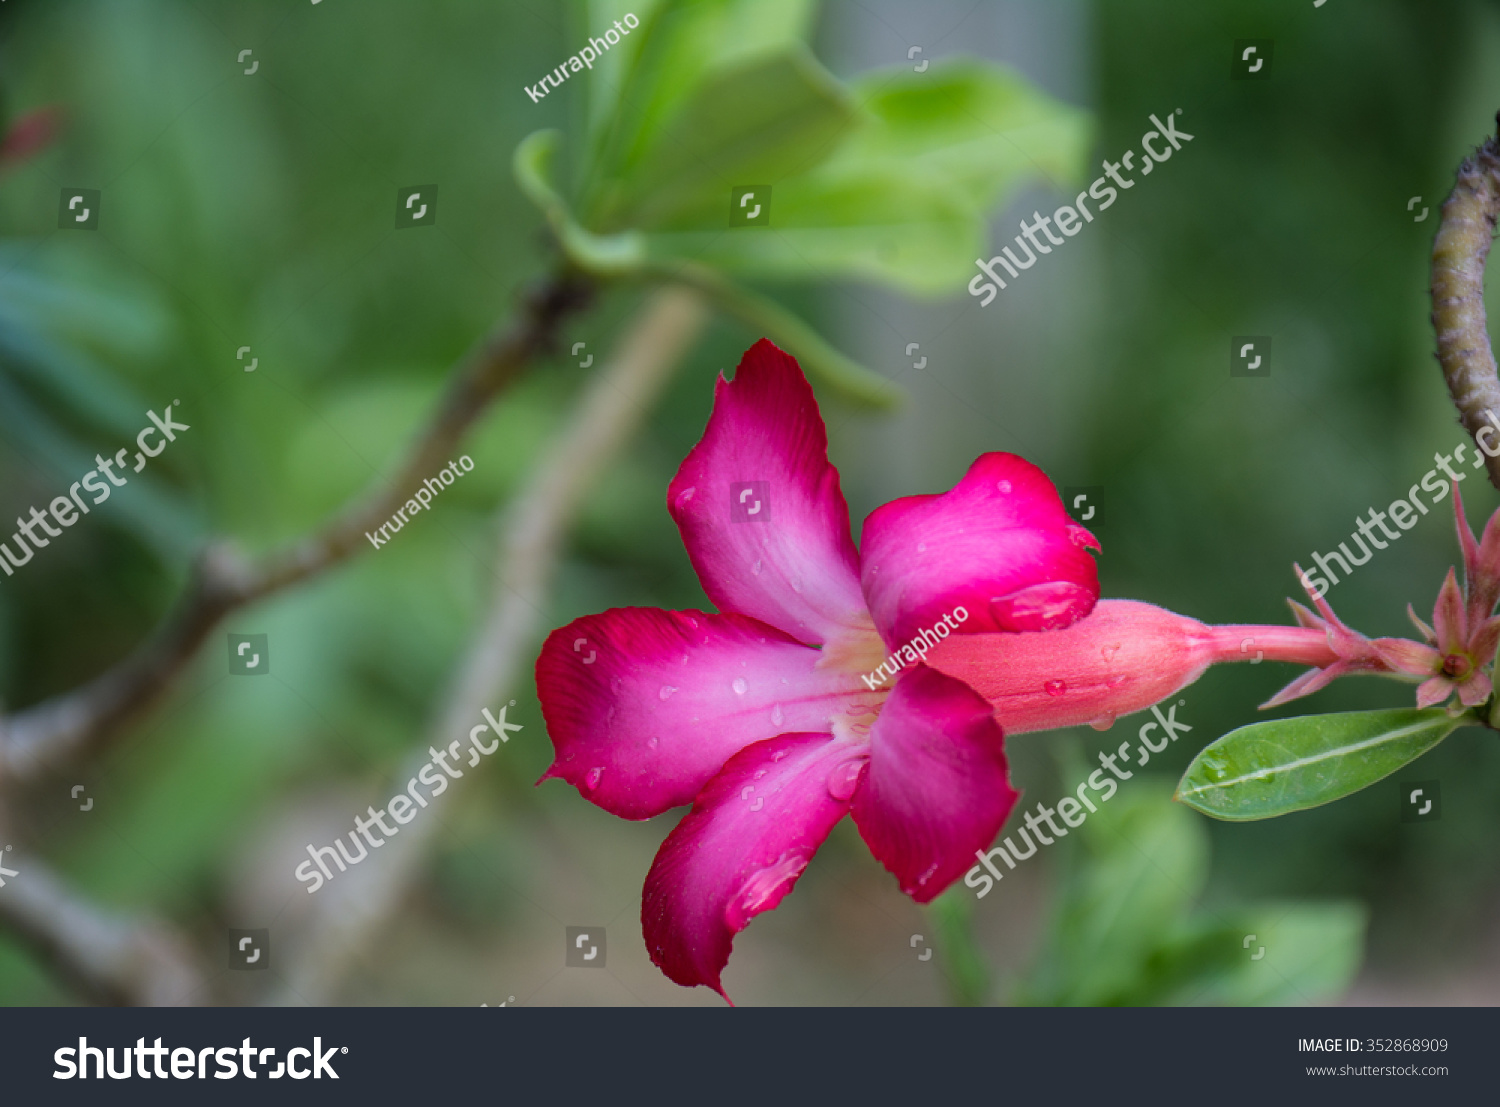 Pink desert rose or impala lily flower and closed up desert rose id 352868909 izmirmasajfo